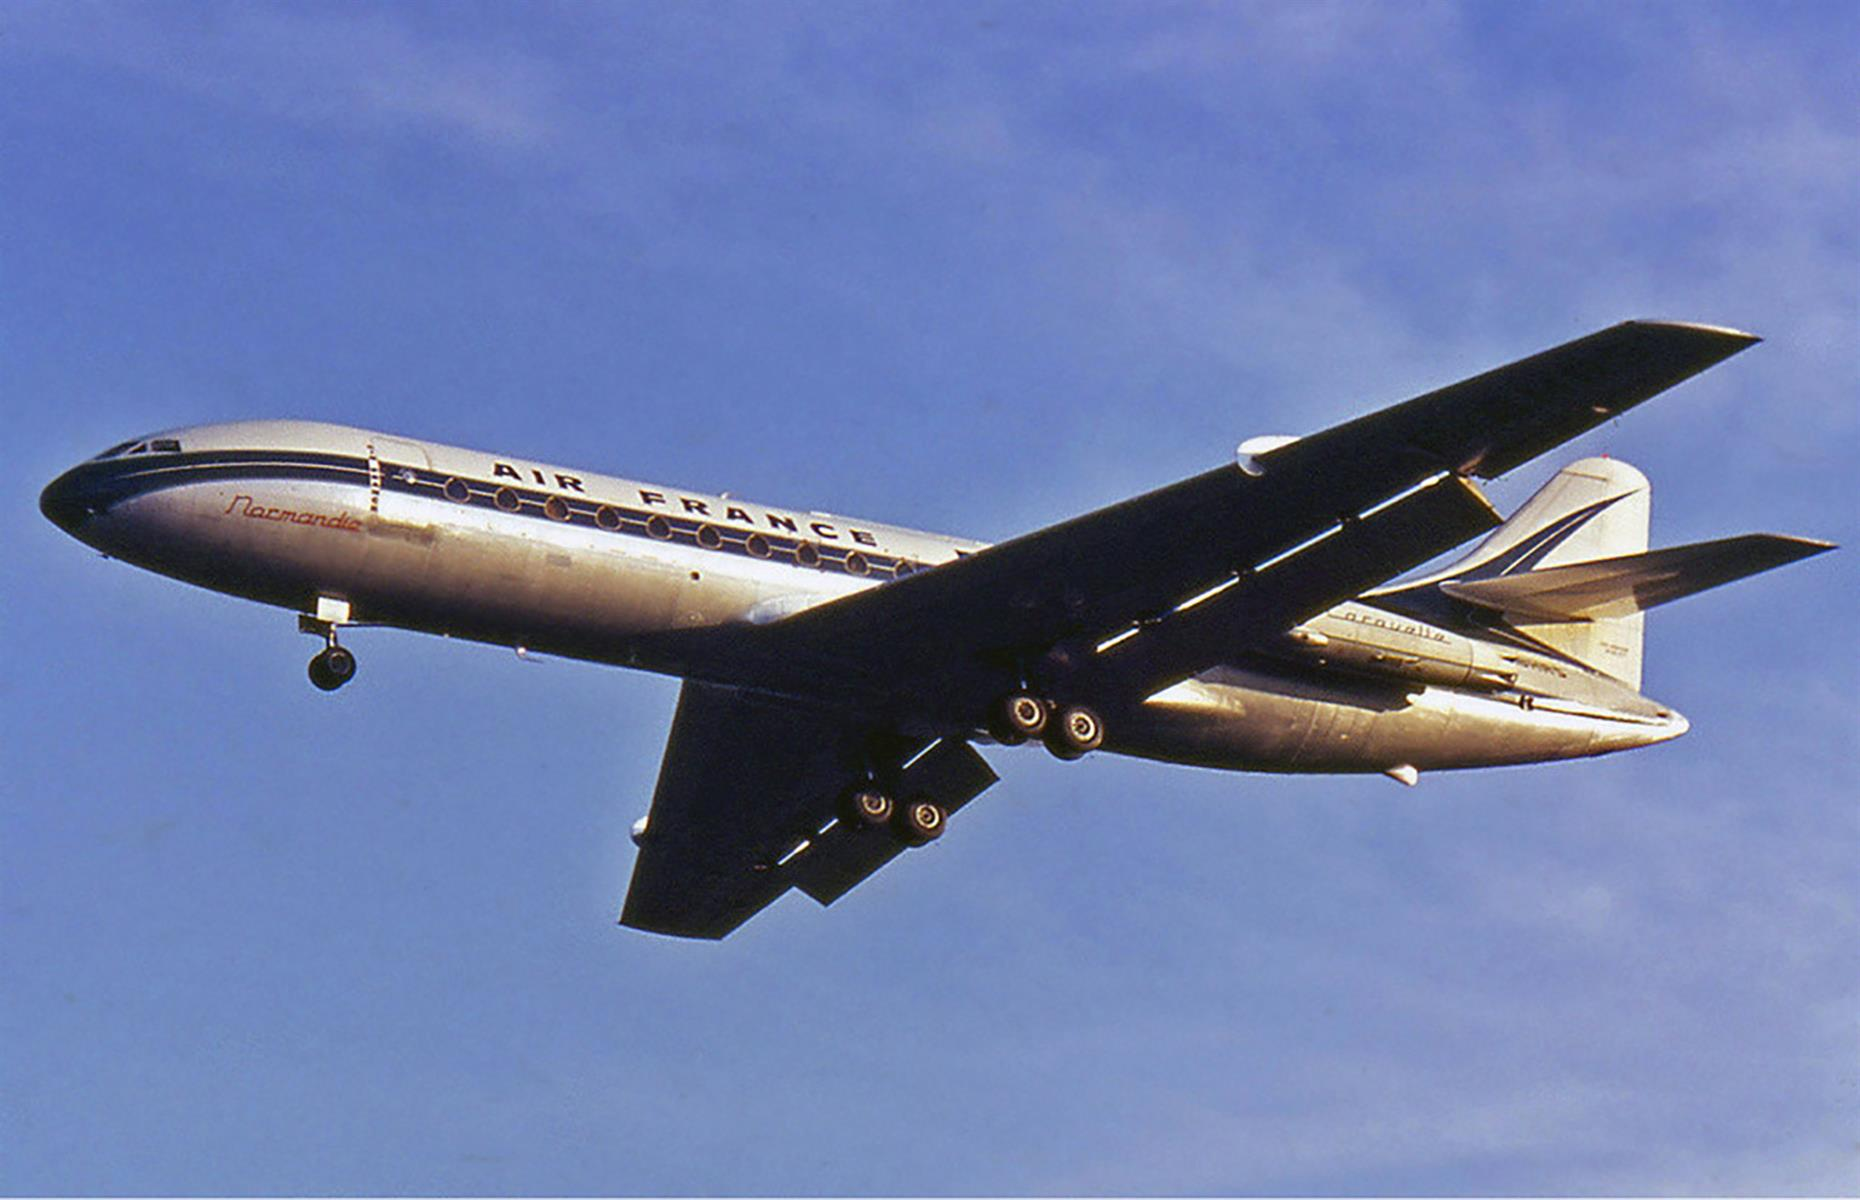 Slide 19 of 35: The plane was retired in 2005 but remains one of the most influential in the industry. It was flown by the likes of Air France, Swissair and Finnair, ferrying well-heeled Europeans between capital cities for decades.